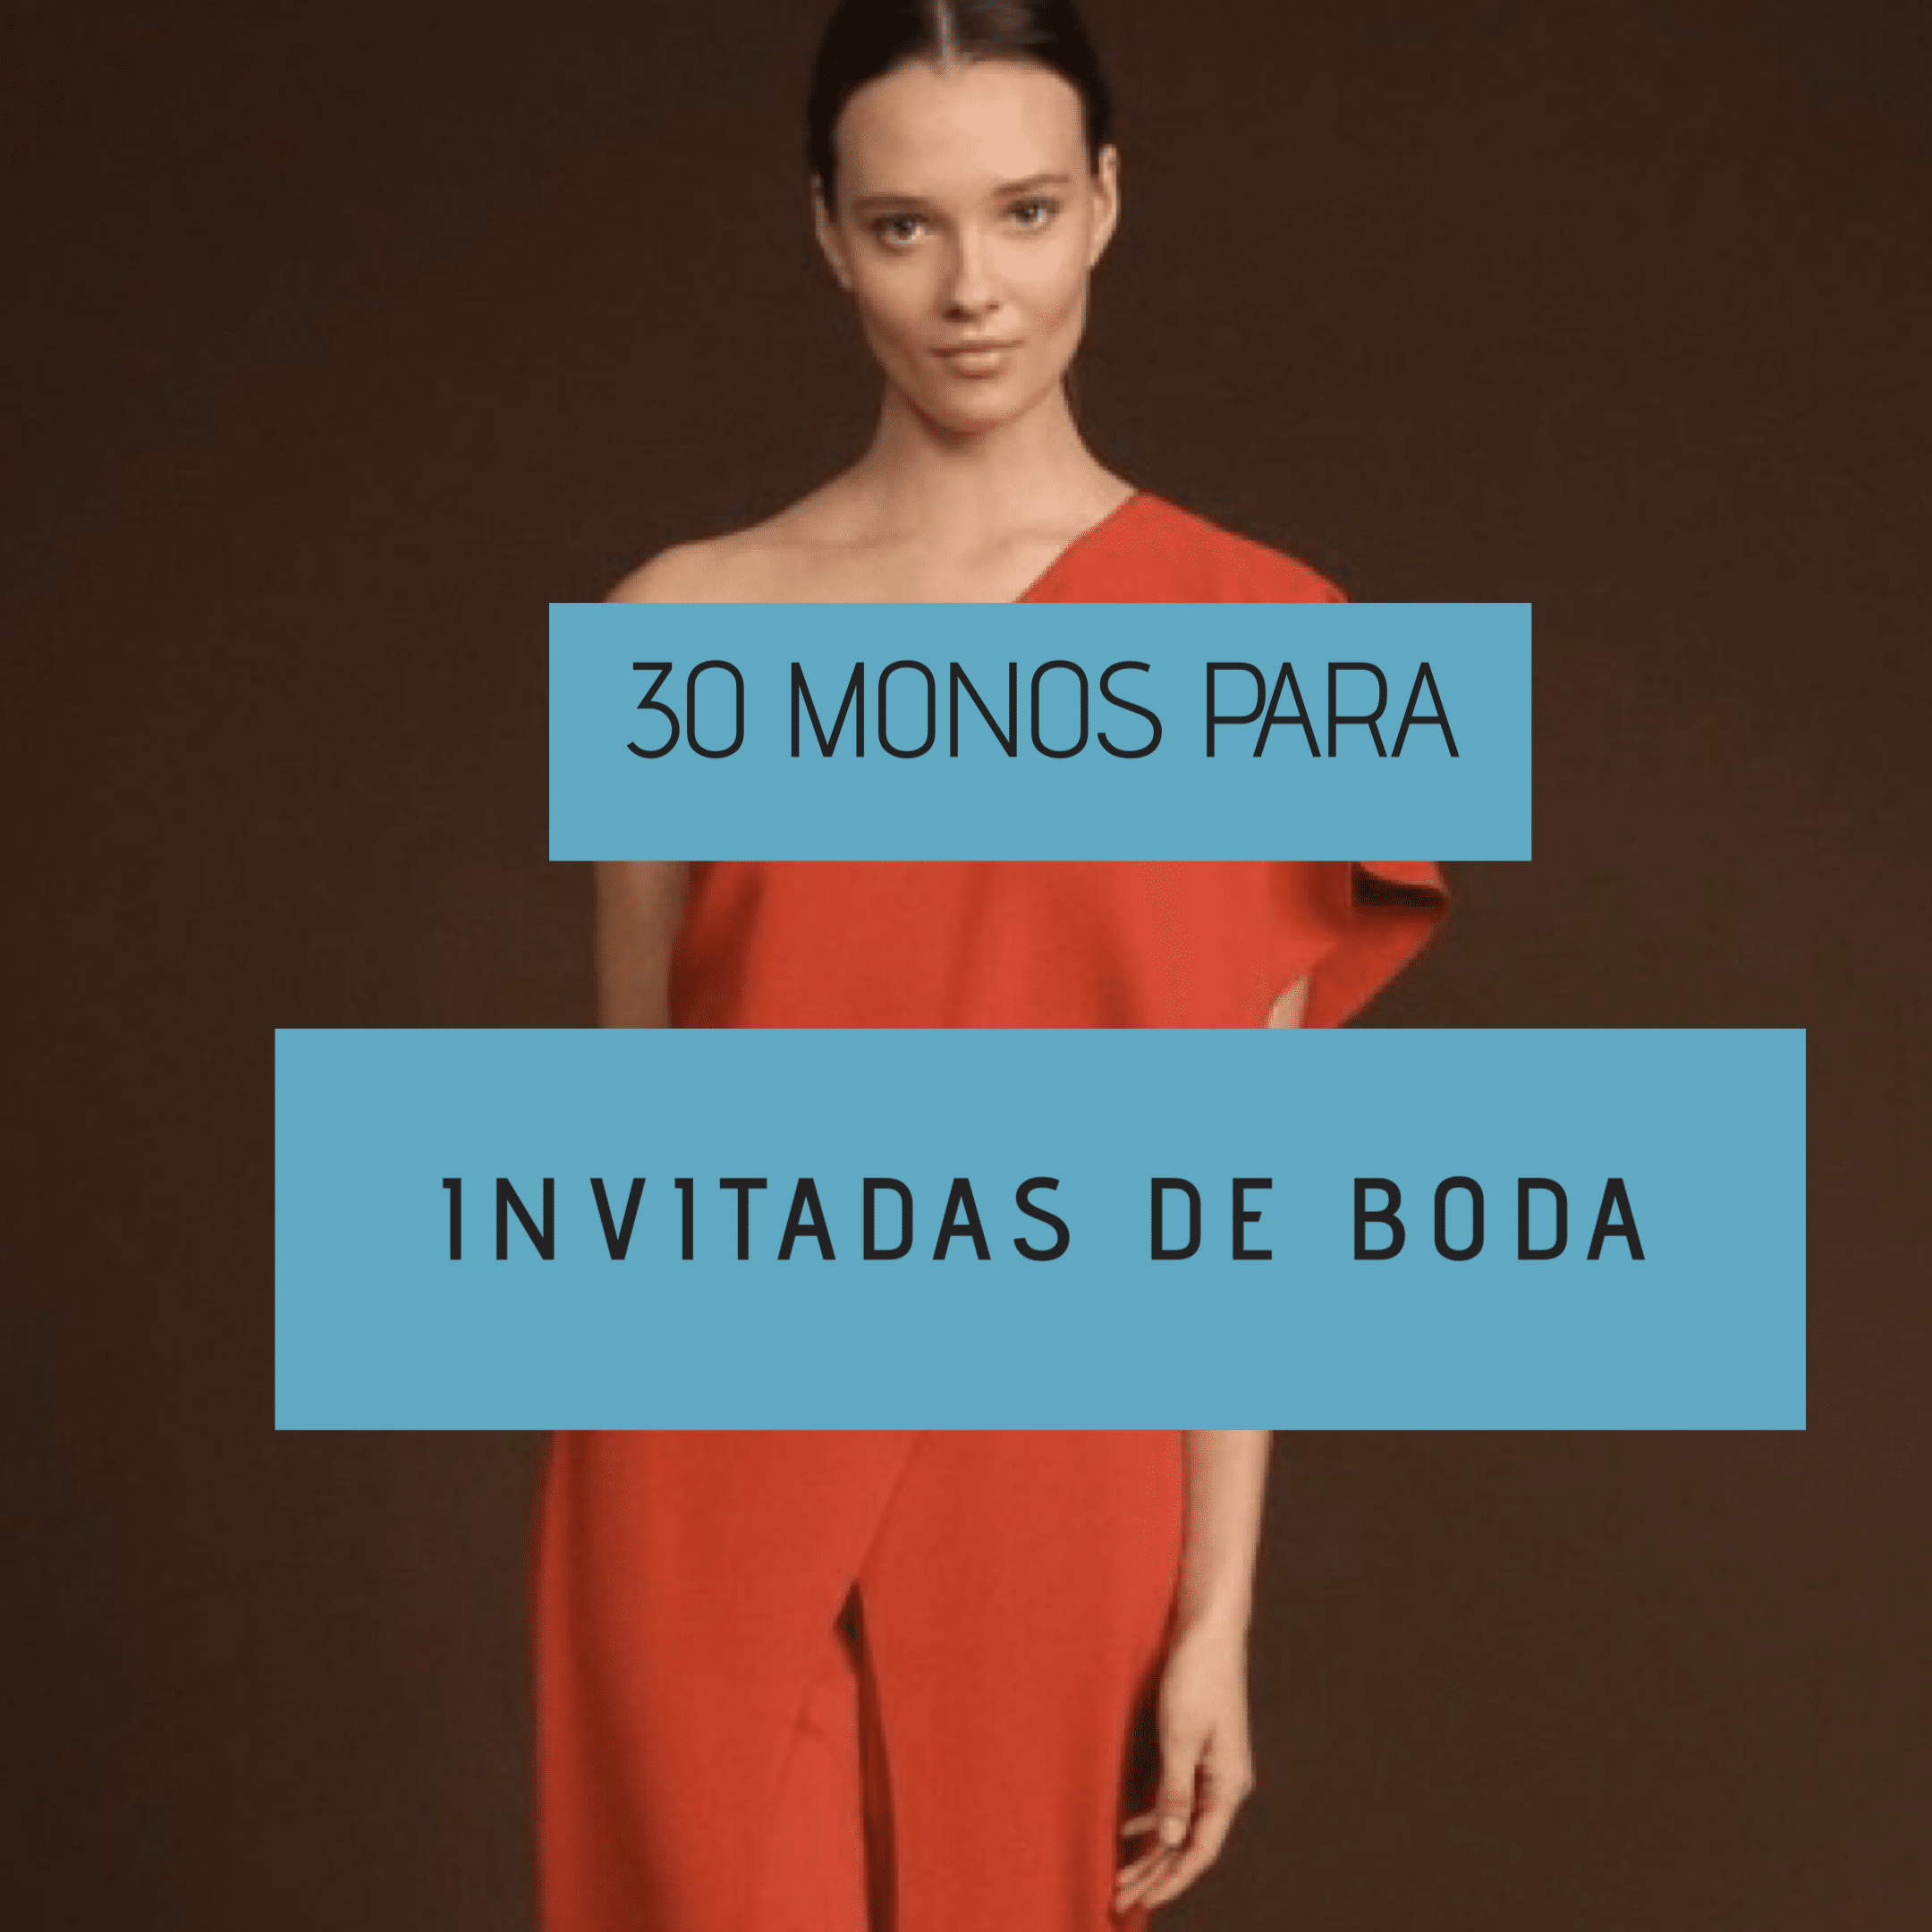 30 Monos para invitadas de boda – consigue un look chic y favorecedor